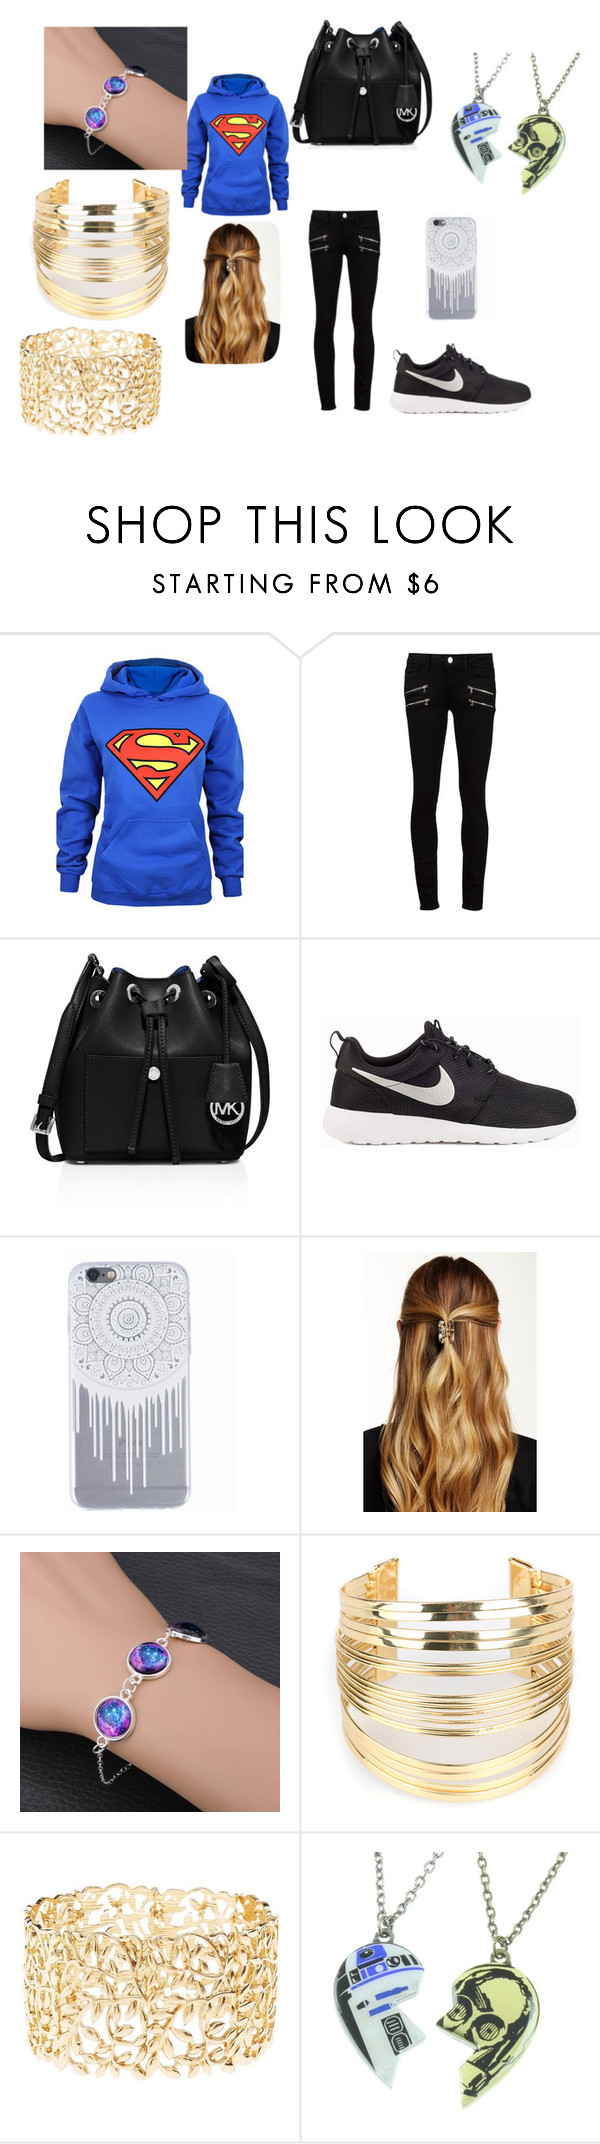 """""""Untitled #53"""" by tibbletha ❤ liked on Polyvore featuring Paige Denim, MICHAEL Michael Kors, NIKE, Natasha Accessories, WithChic, Charlotte Russe and R2"""